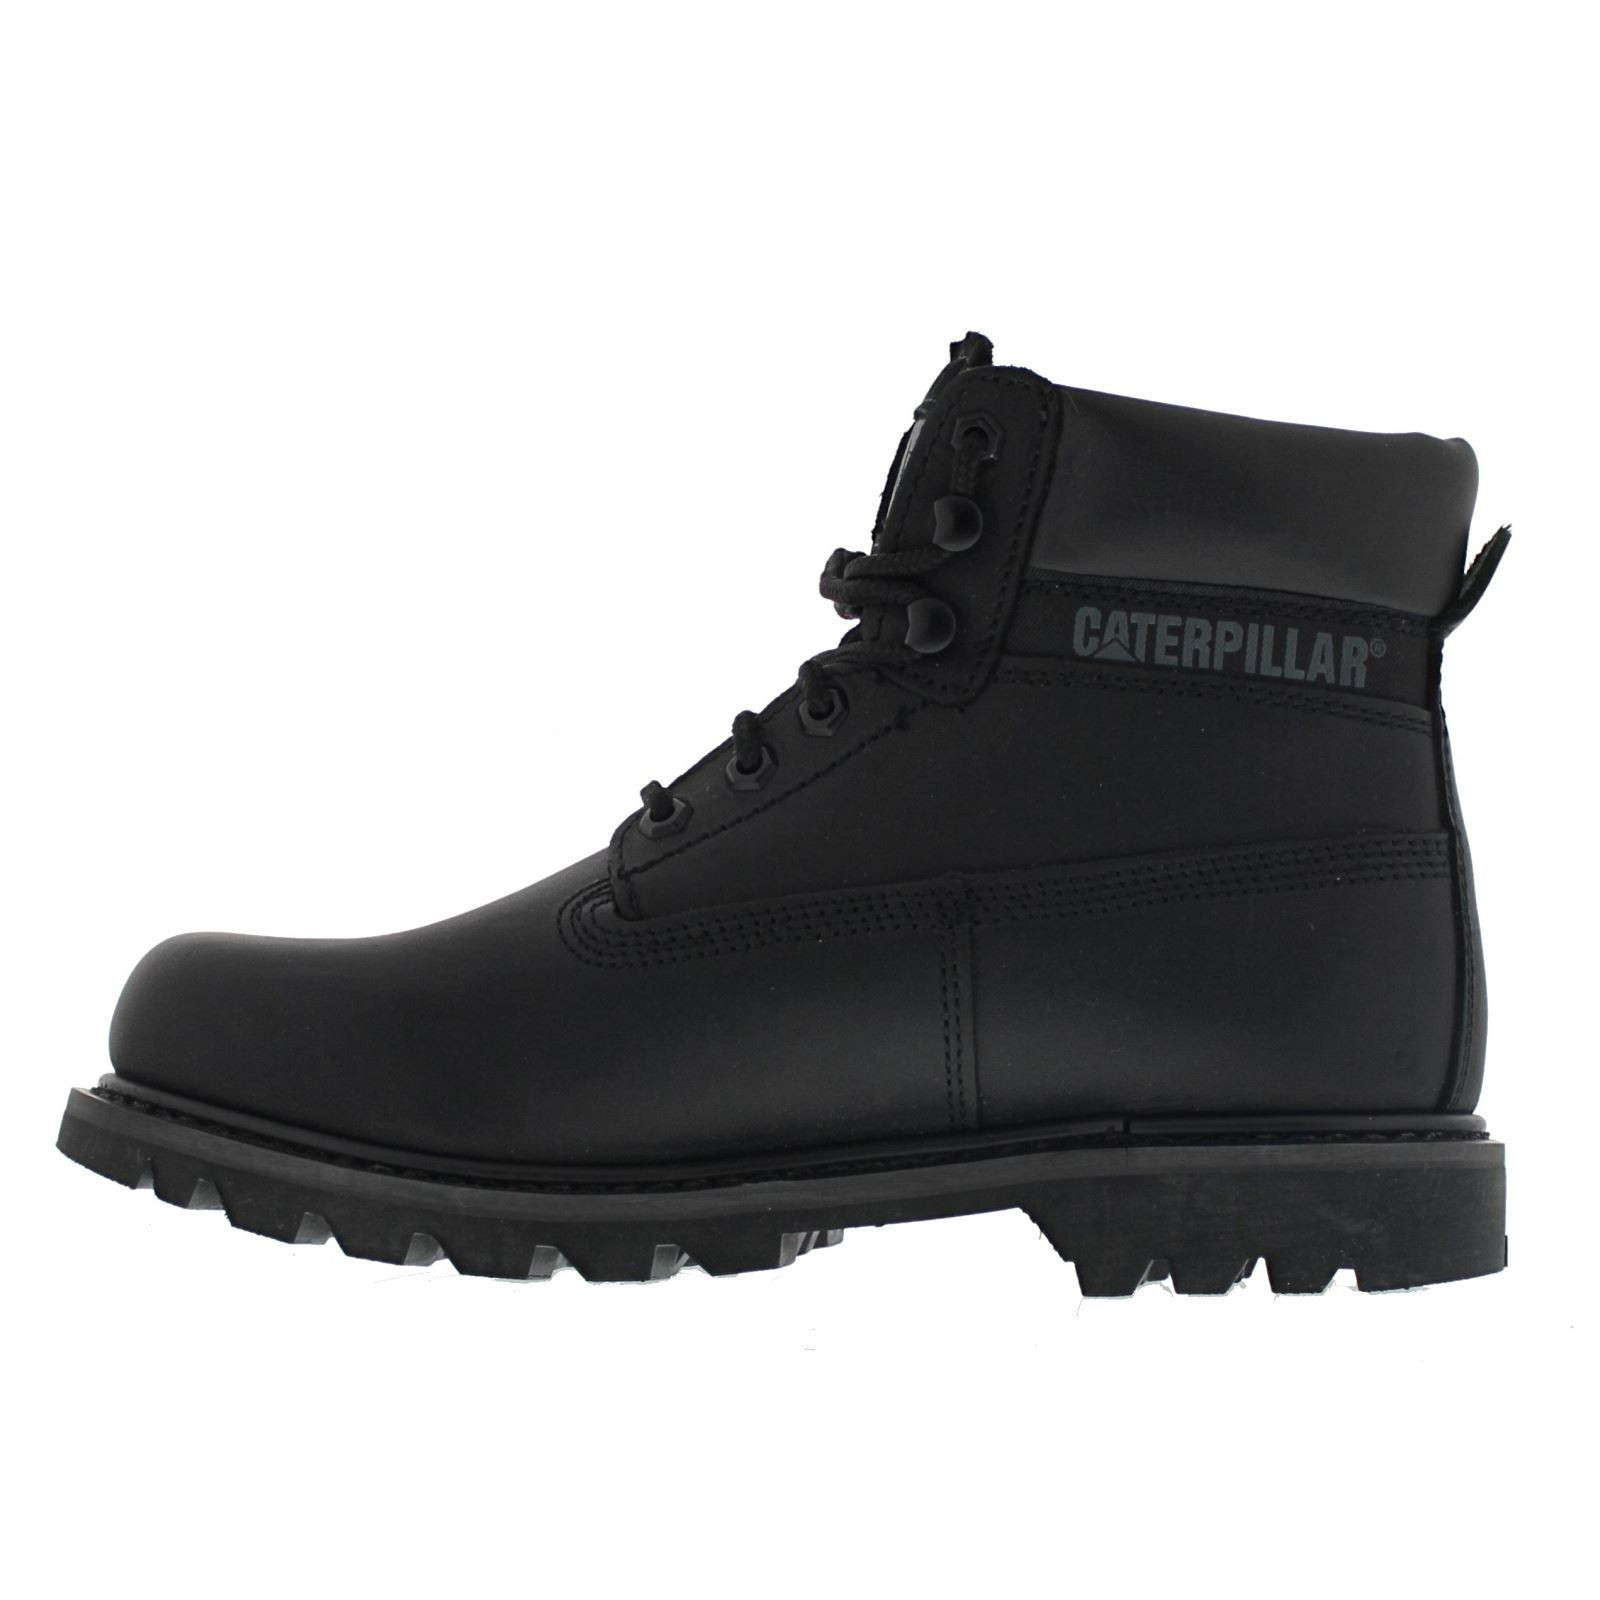 e58306fa0ee227 Boots Caterpillar Mitch Chocolate Marron Marron - Achat / Vente bottine -  Soldes* dès le